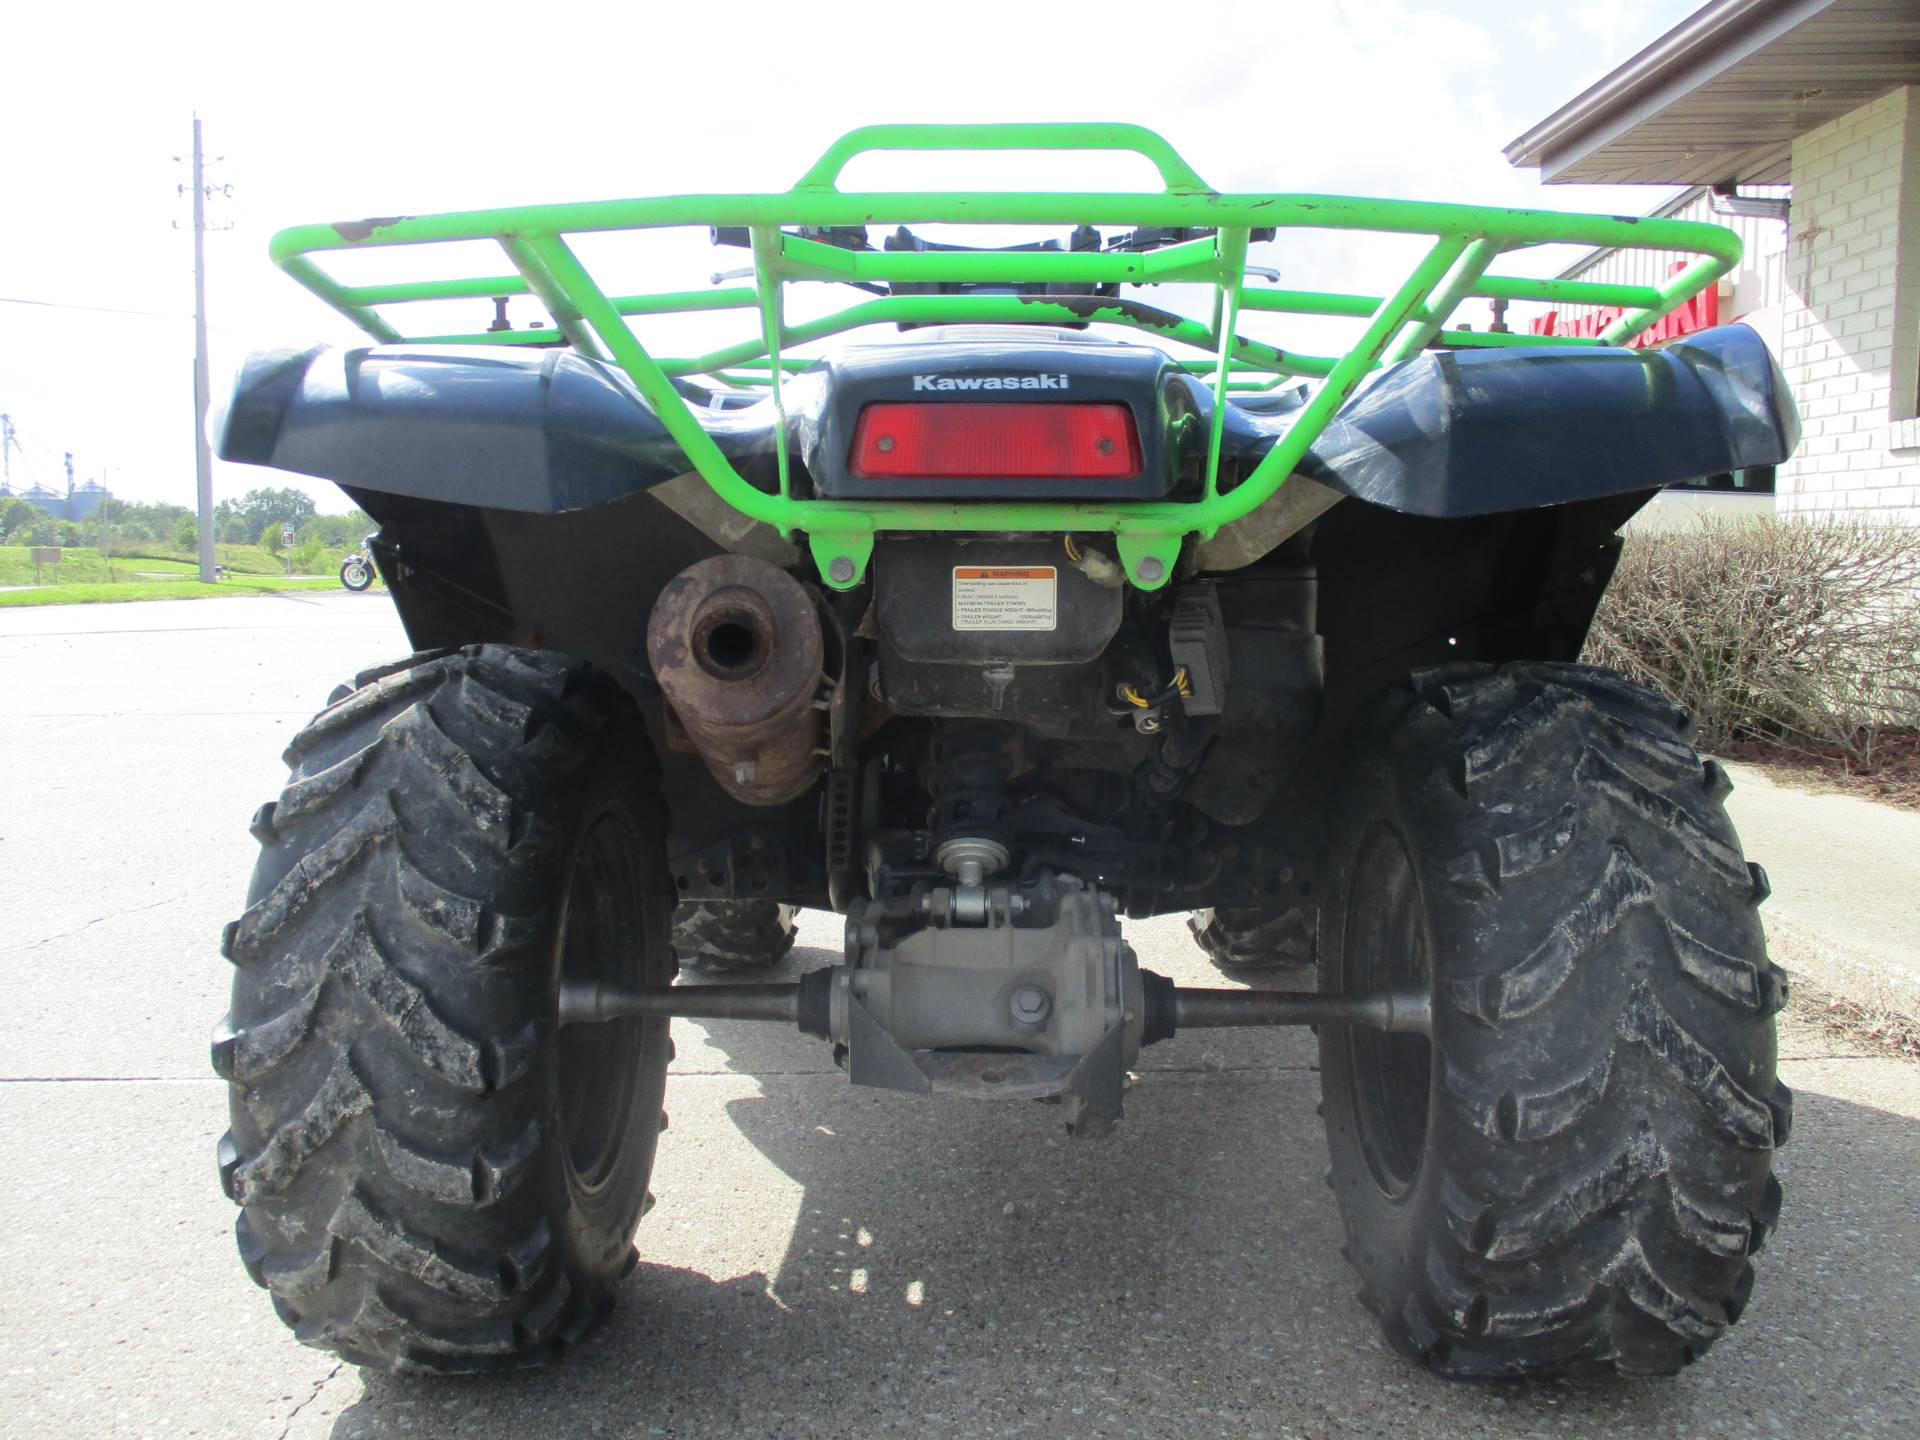 2011 Kawasaki Brute Force® 650 4x4 in Winterset, Iowa - Photo 8